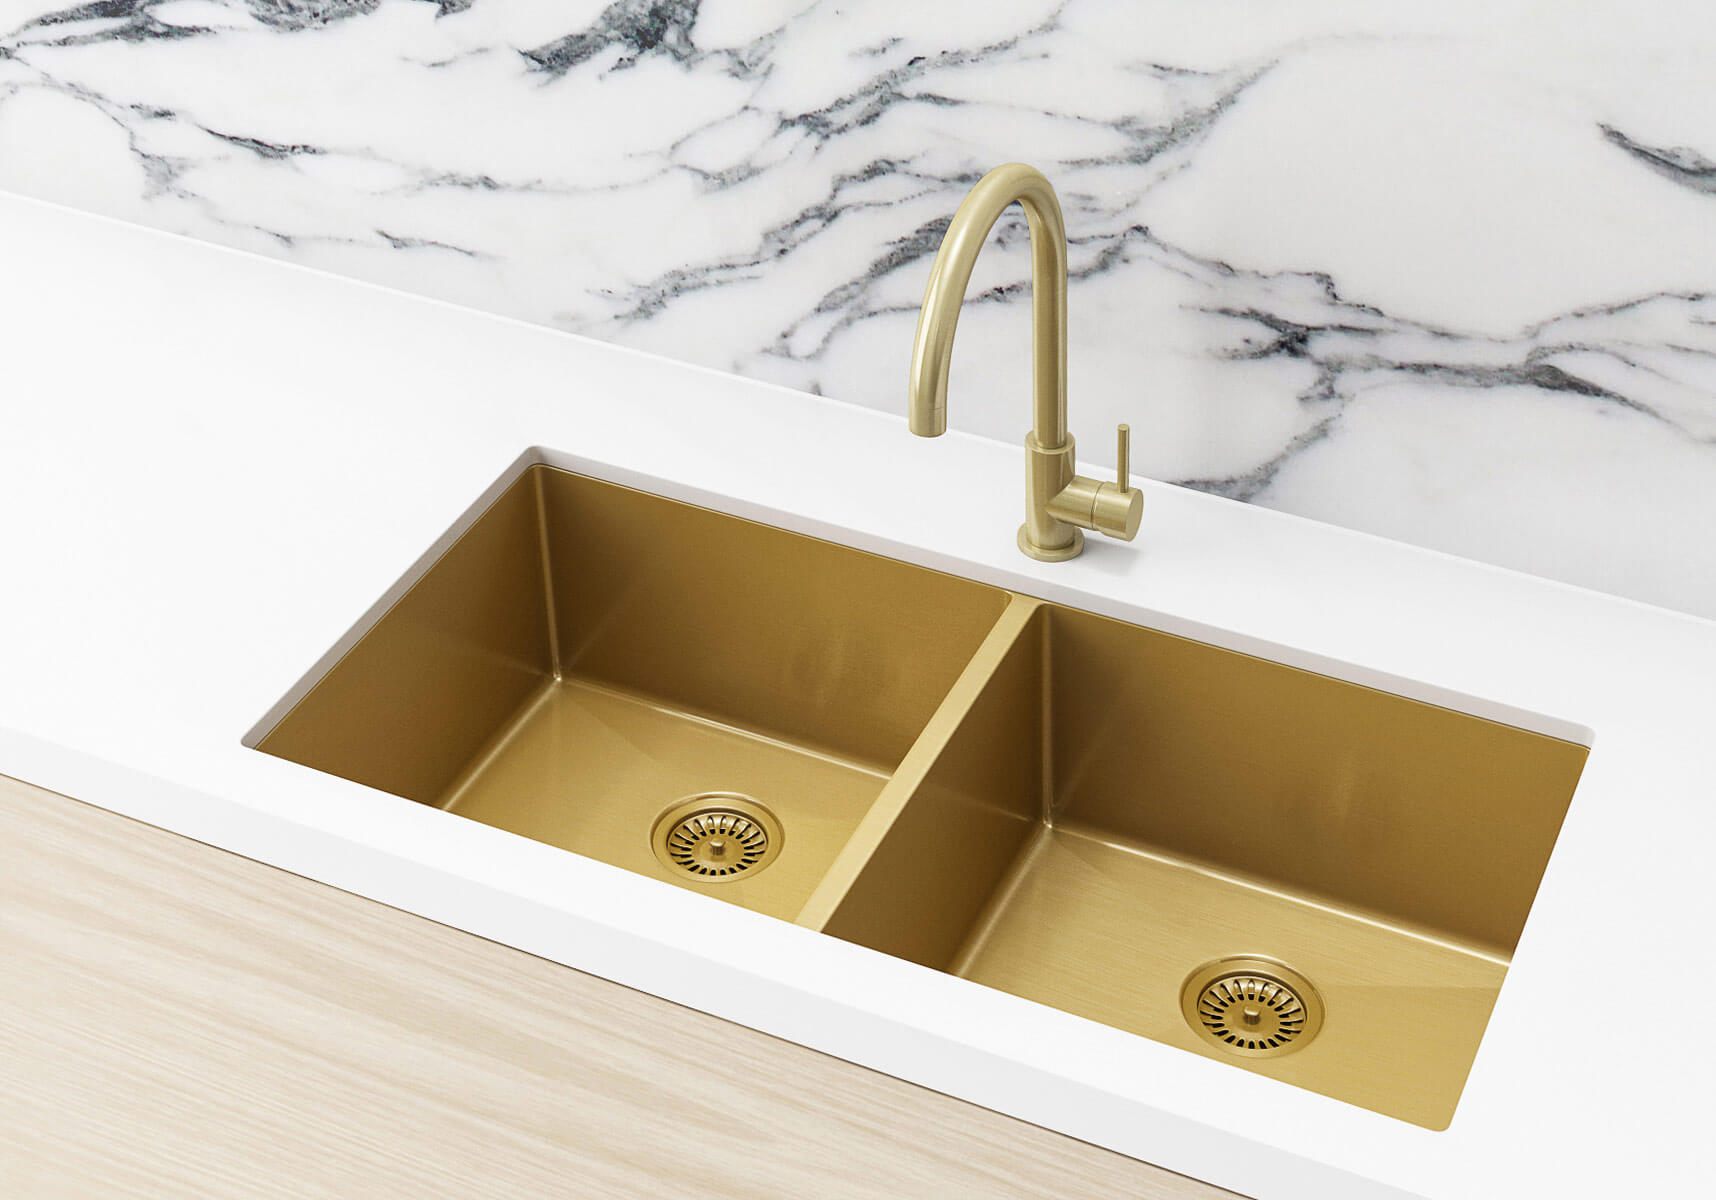 stainless steel double bowl brushed gold kitchen sink nano 860x440x200mm